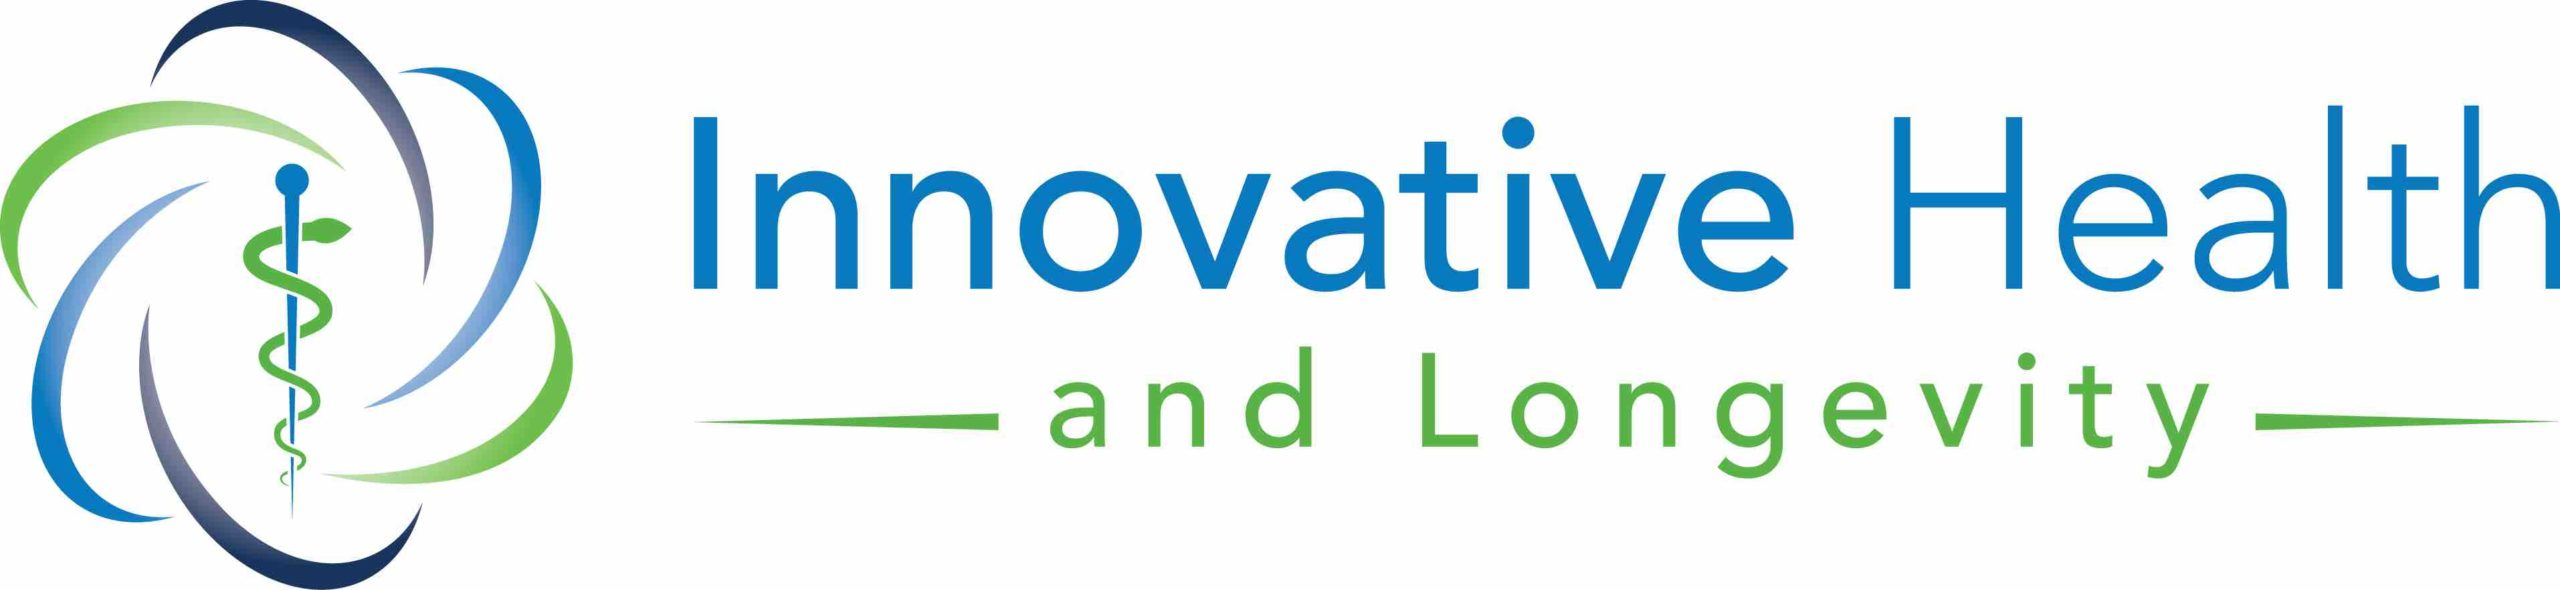 innovativehealthohio